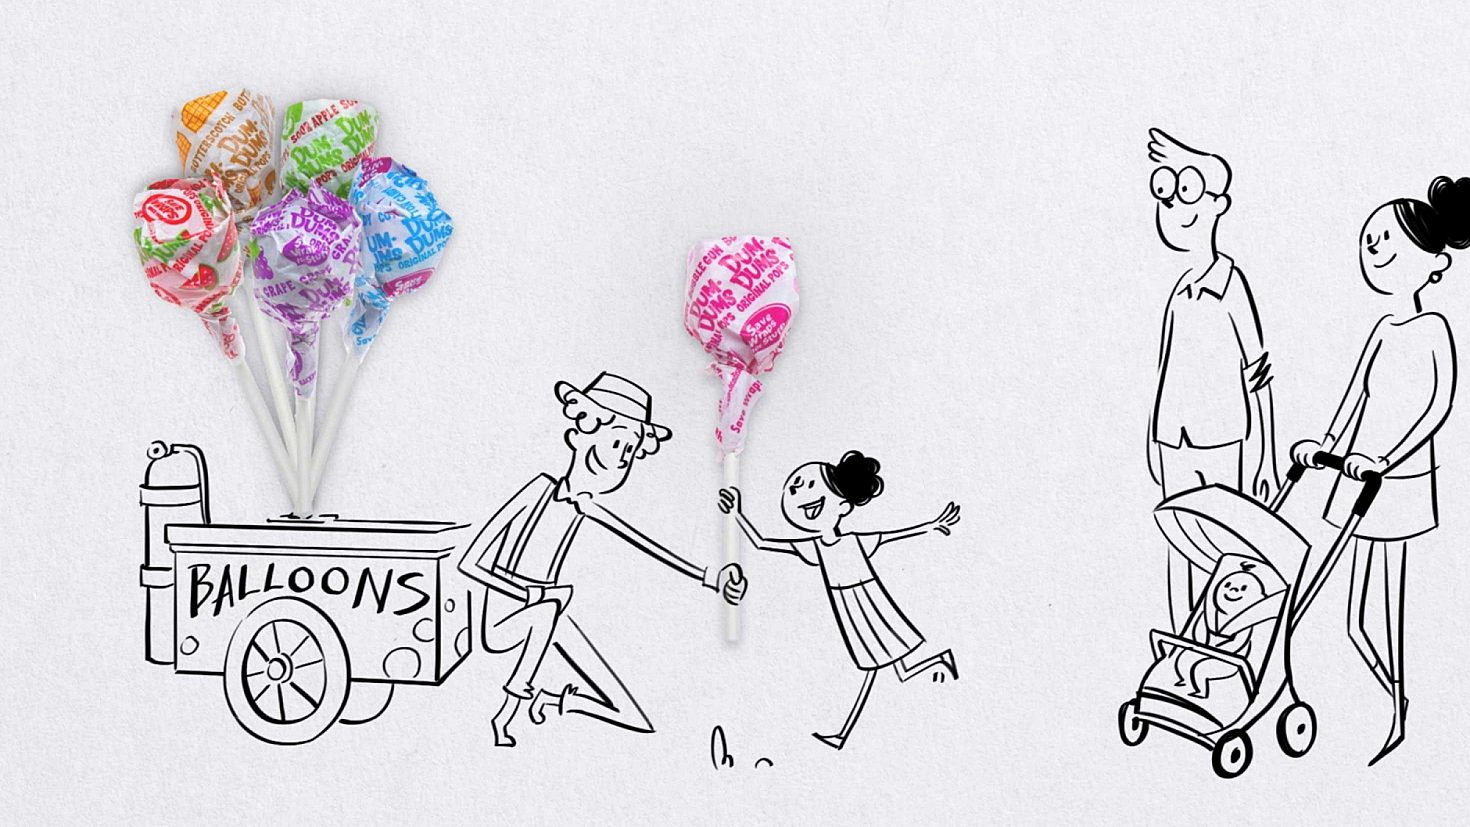 A cartoon showing a young girl with her family, reaching out to grab a balloon that is a Dum Dum's pop.